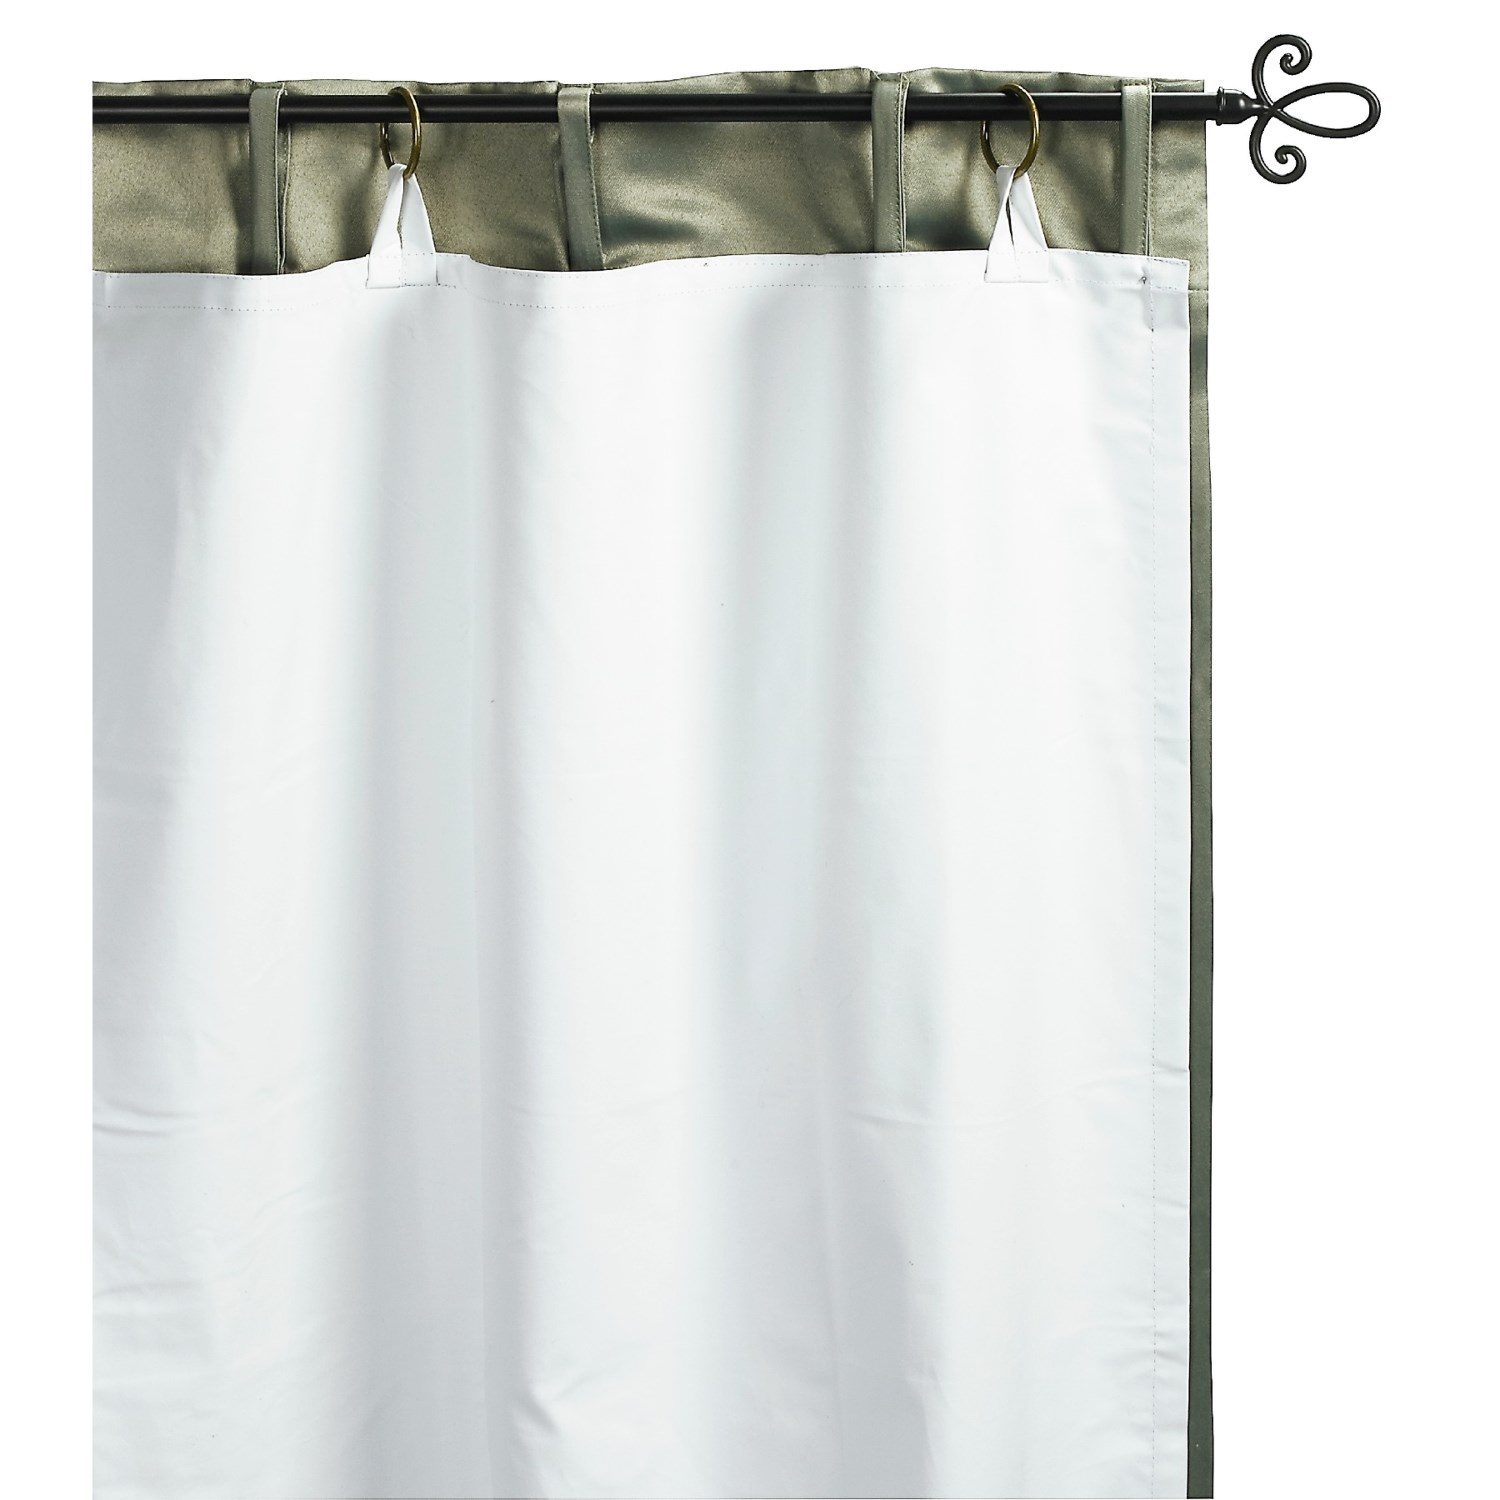 commonwealth home fashions blackout curtain liner 50x58 single